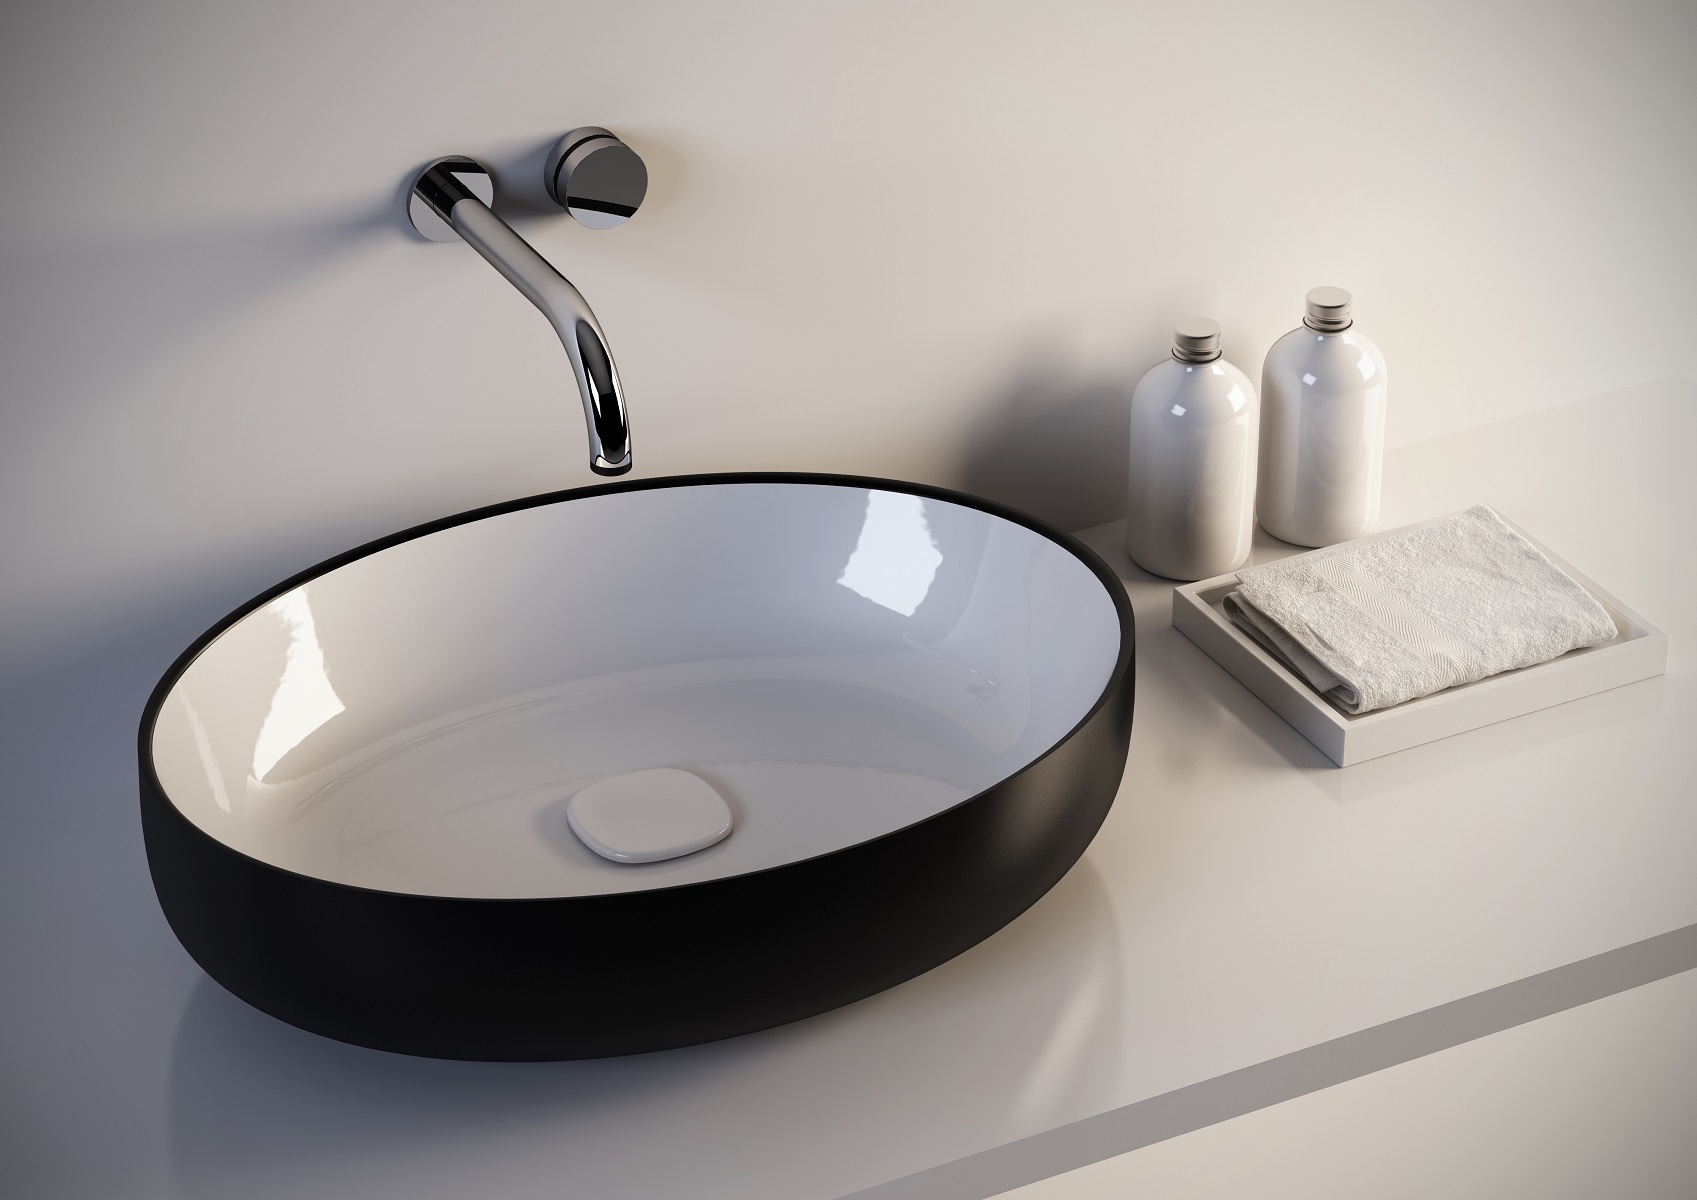 Metamorfosi black wht oval ceramic bathroom vessel sink Black vessel bathroom sink